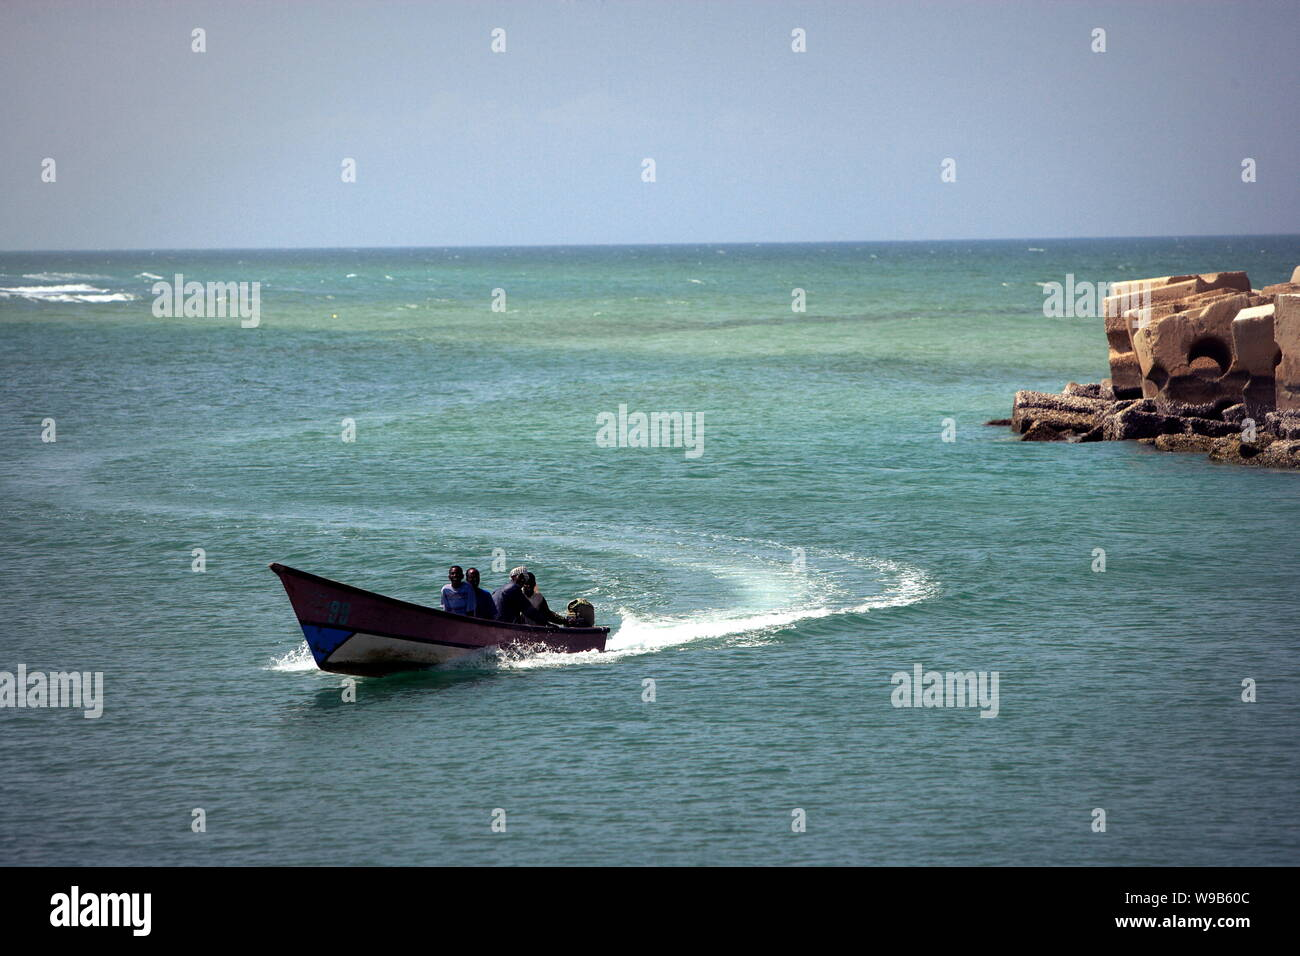 Somali fishermen return in a fishing boat to the harbor in